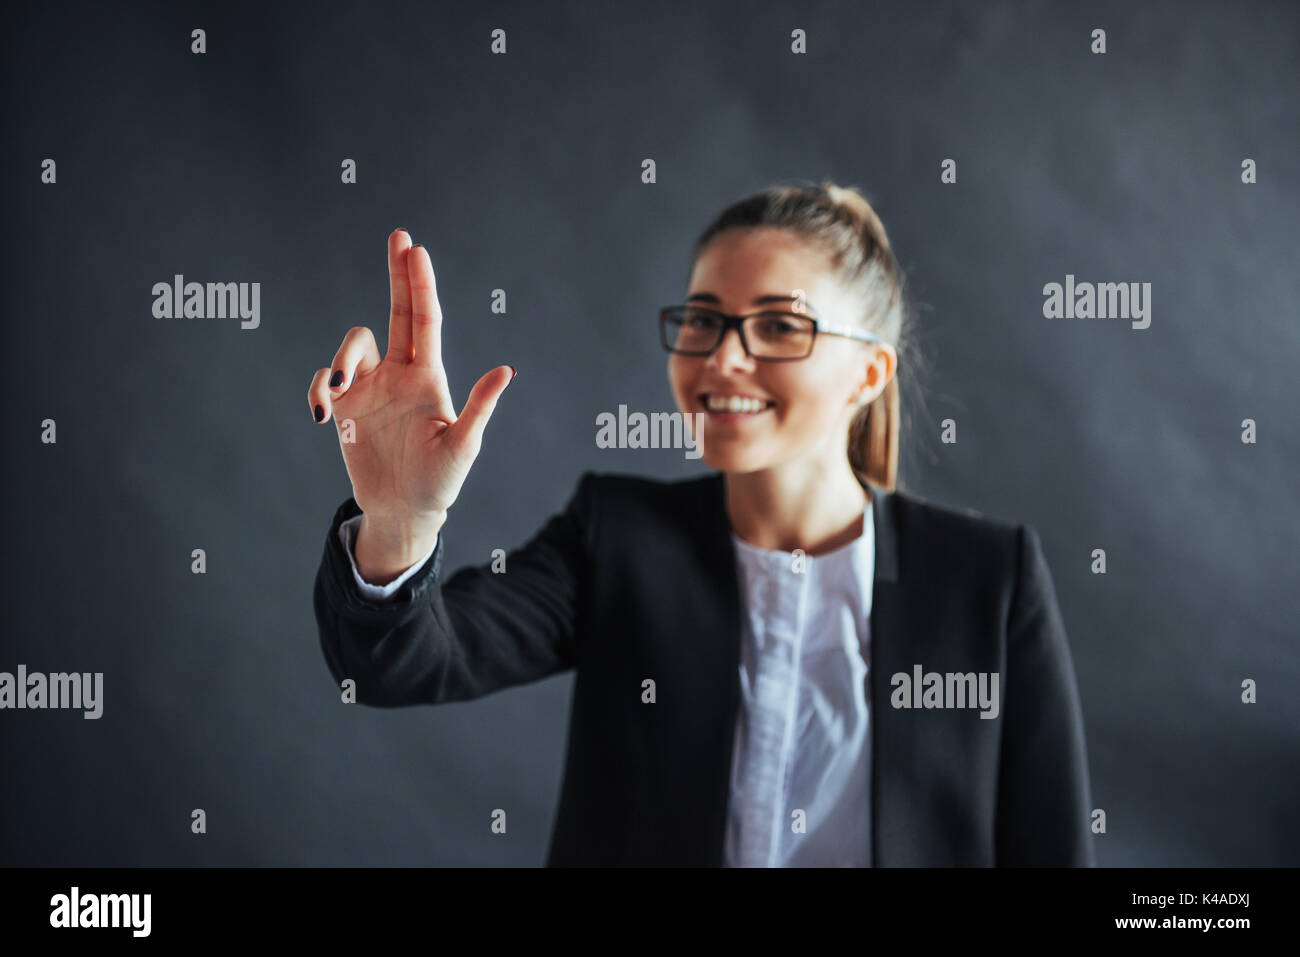 Happy business woman shows finger up, standing on a black background in the studio, friendly, smiling, focus on hand. - Stock Image